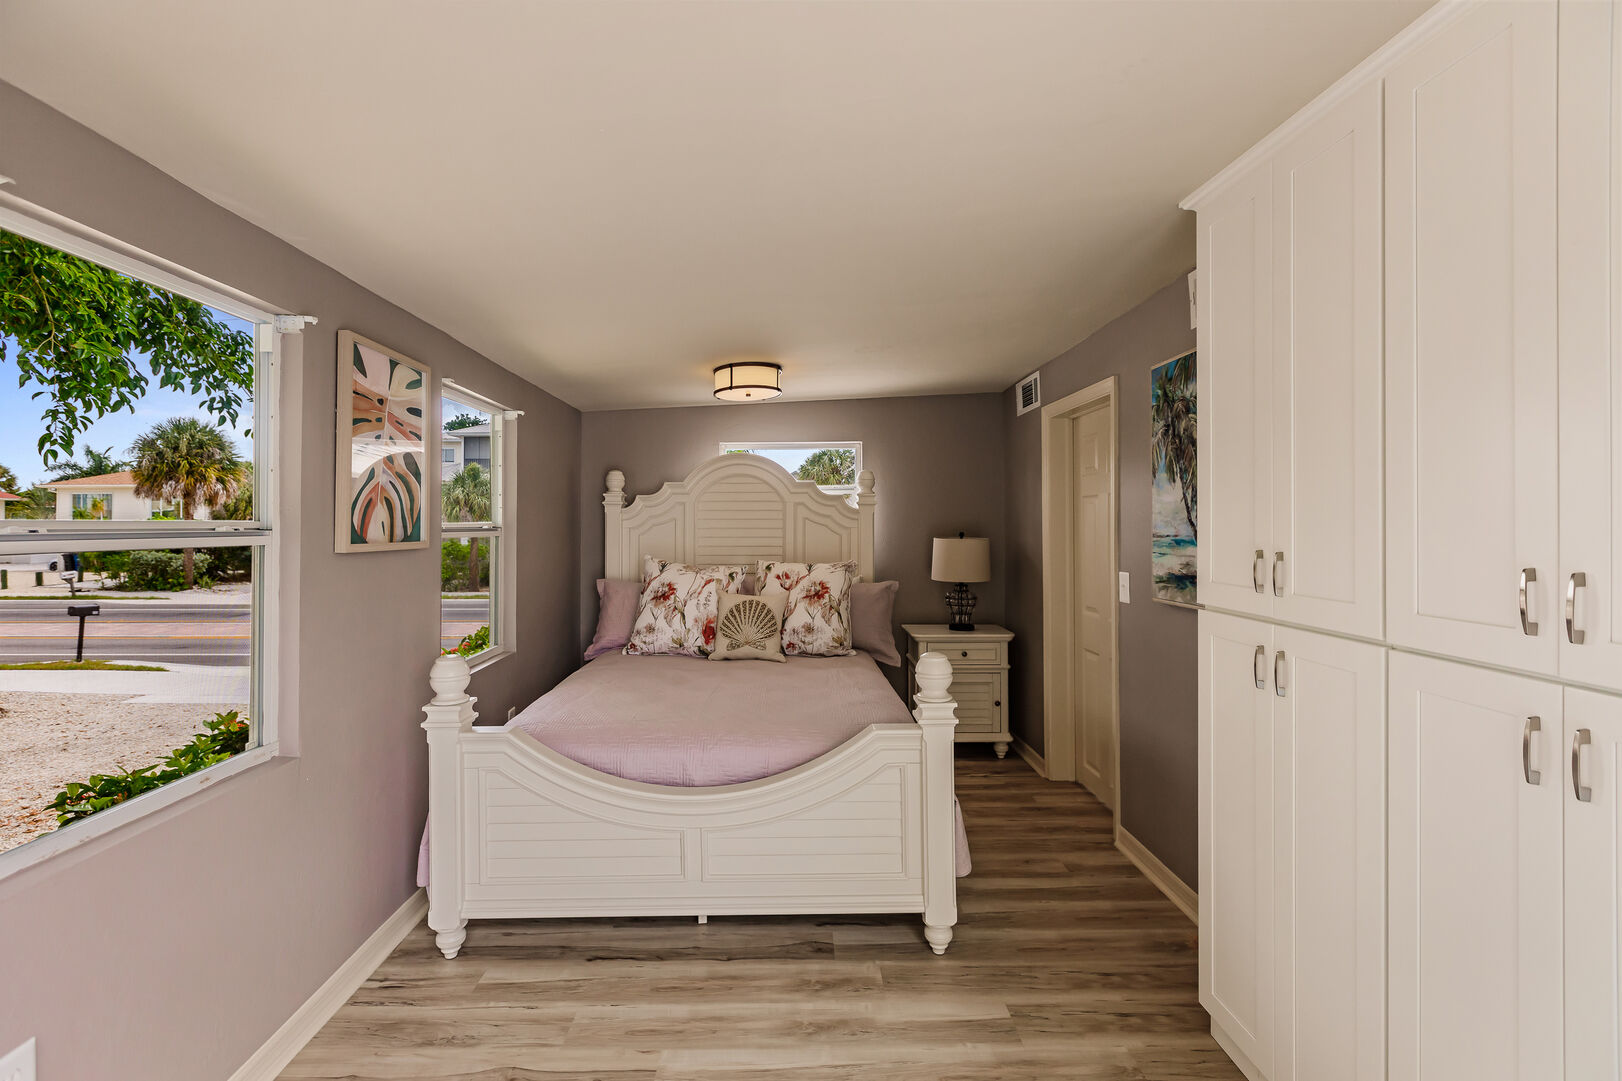 Stone Crab Cottage Private Bedroom with Large Bed